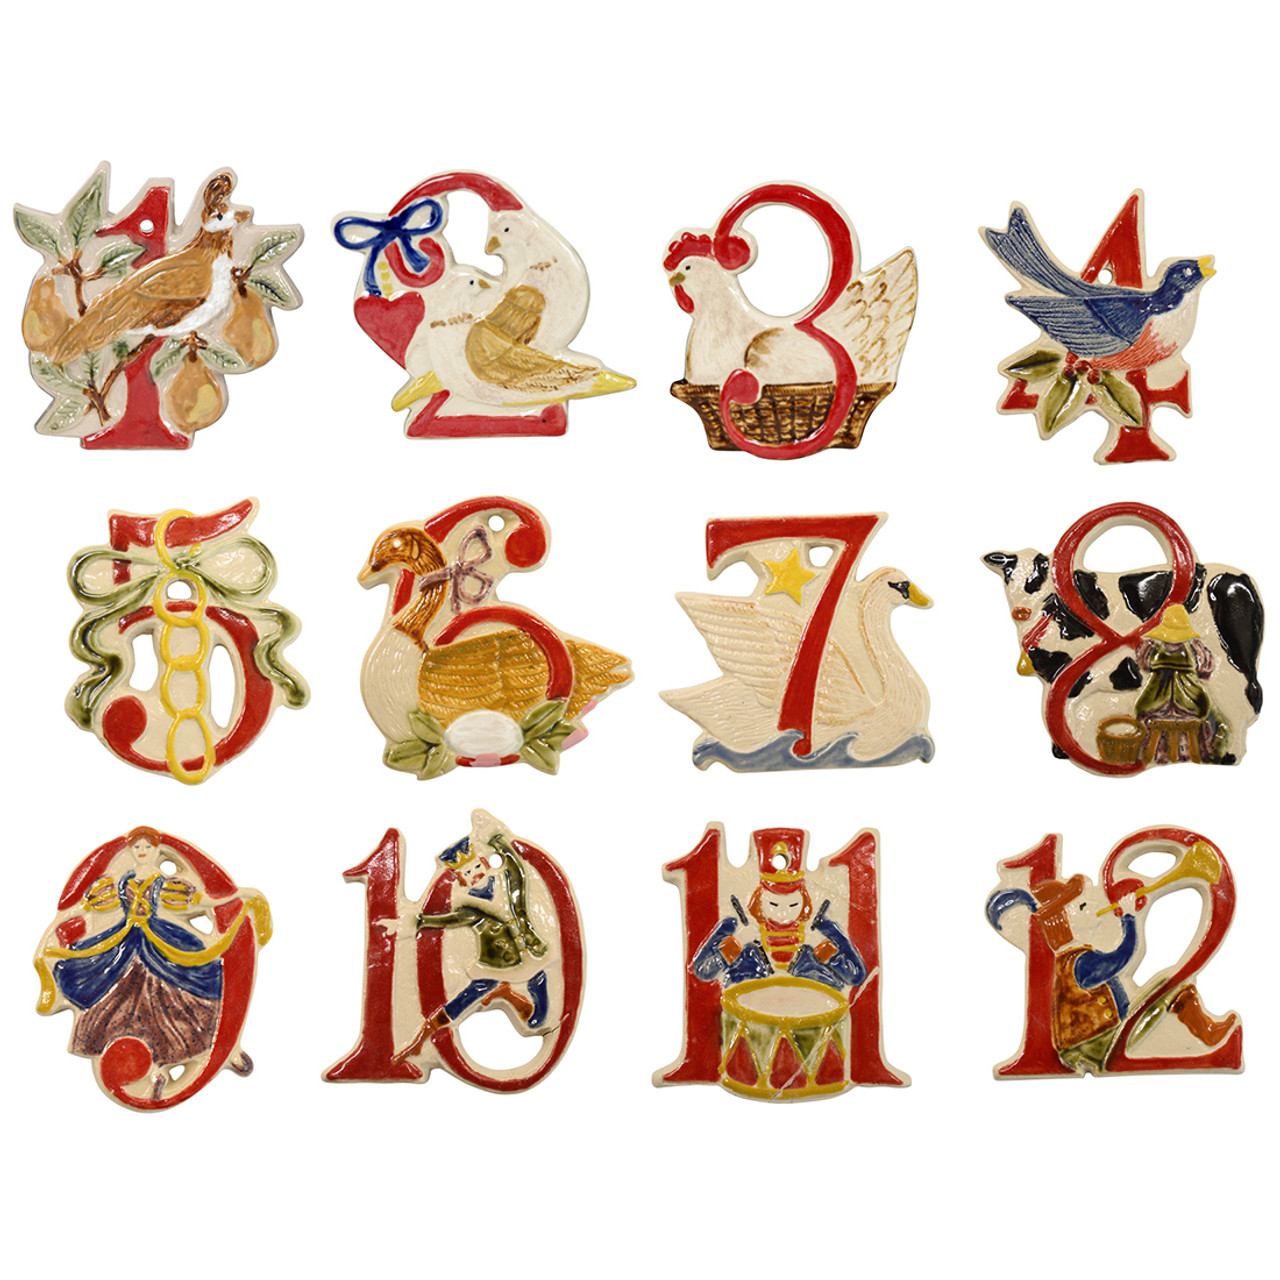 hight resolution of 12 days of christmas stoneware s 2016 release of 12 days of christmas